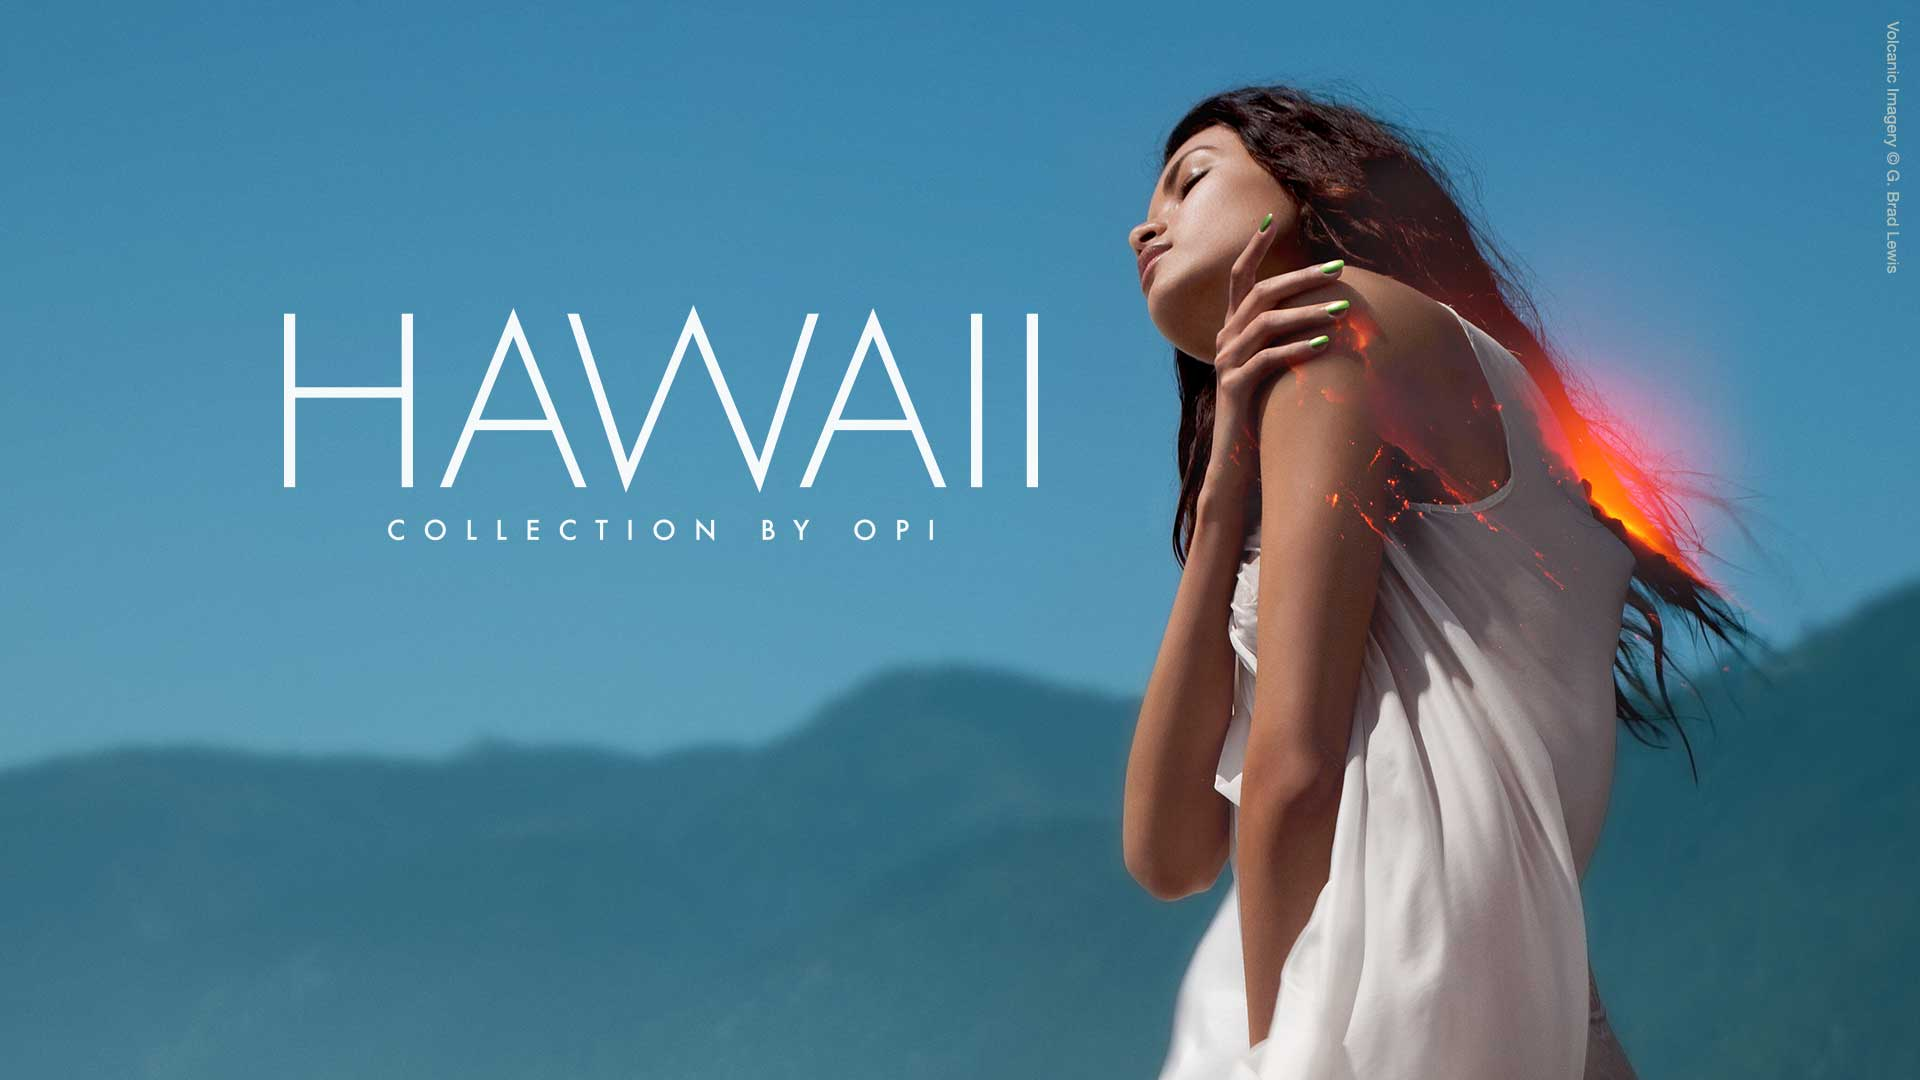 http://opi.com/sites/default/files/hawaii-collection-gallery-00003.jpg